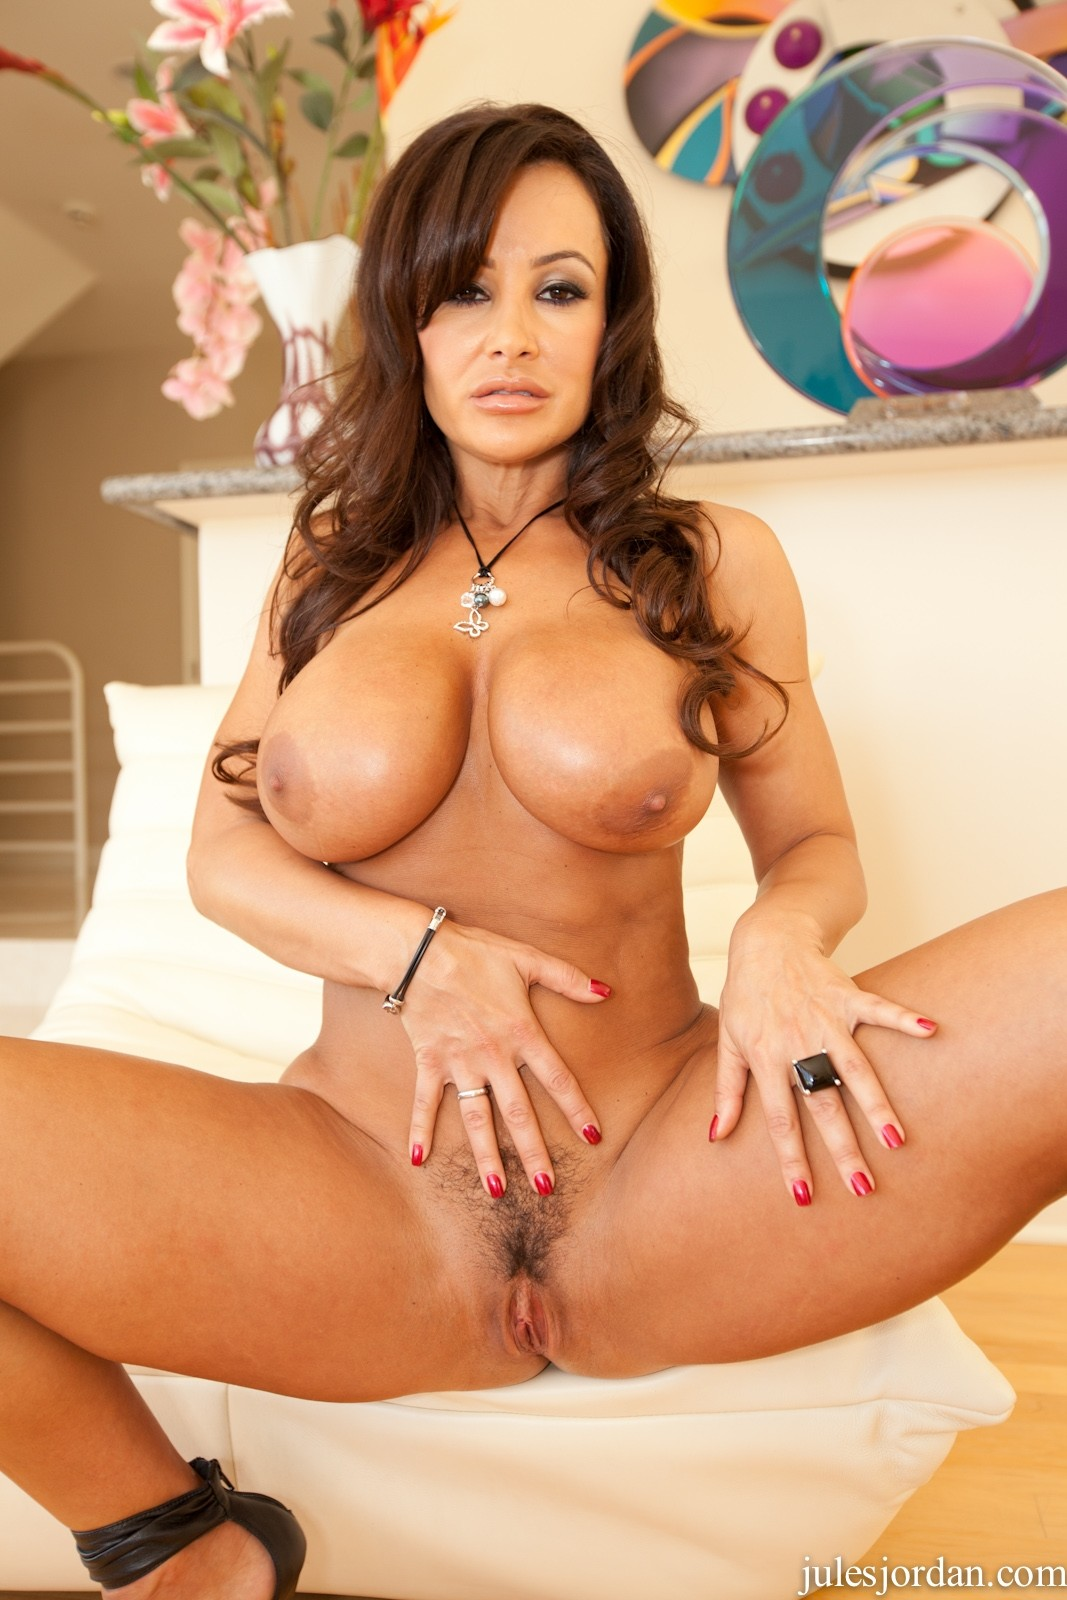 Idea lisa ann star porn consider, that you